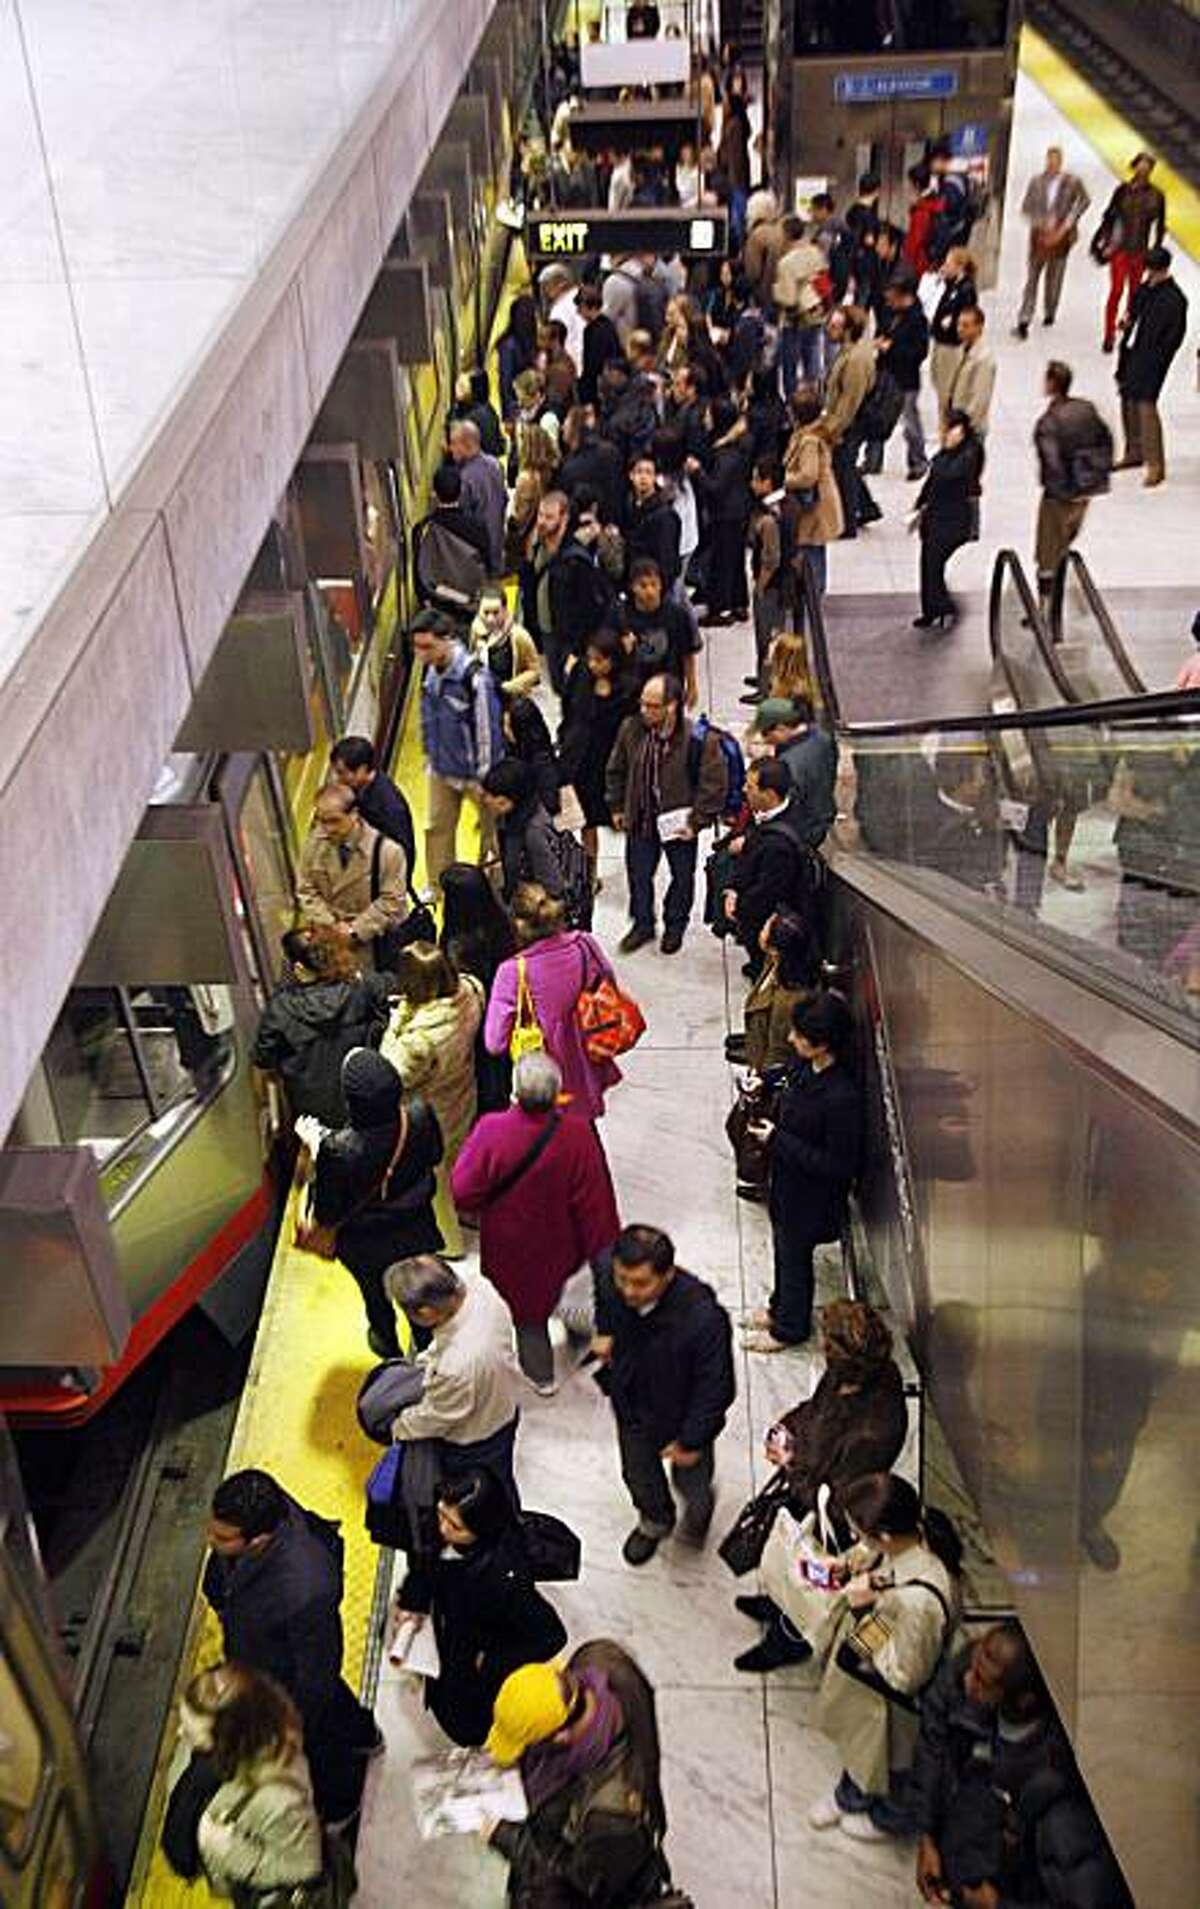 Commuters wait for a MUNI train at the Montgomery Street station in San Francisco, Calif., on Friday, February 20, 2009. Attempts to get more people out of their cars have fallen short, despite strong arguments from advocates who say alternatives to driving are good for the environment.